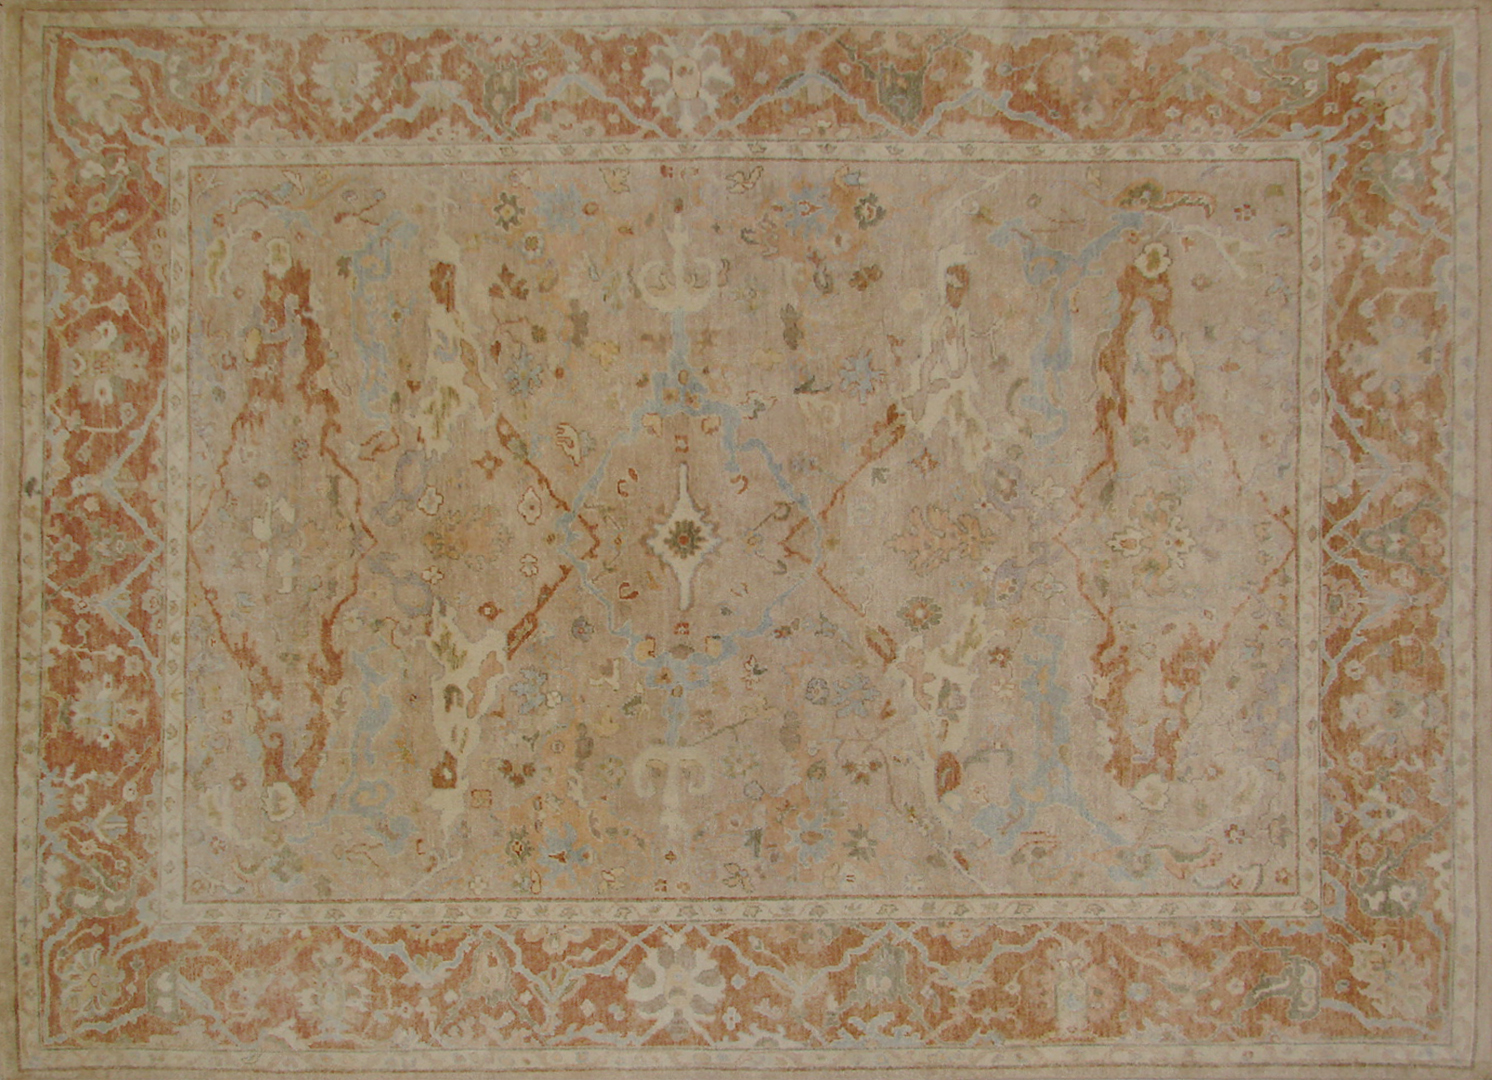 8x10 Oushak Hand Knotted Wool Area Rug - MR19708